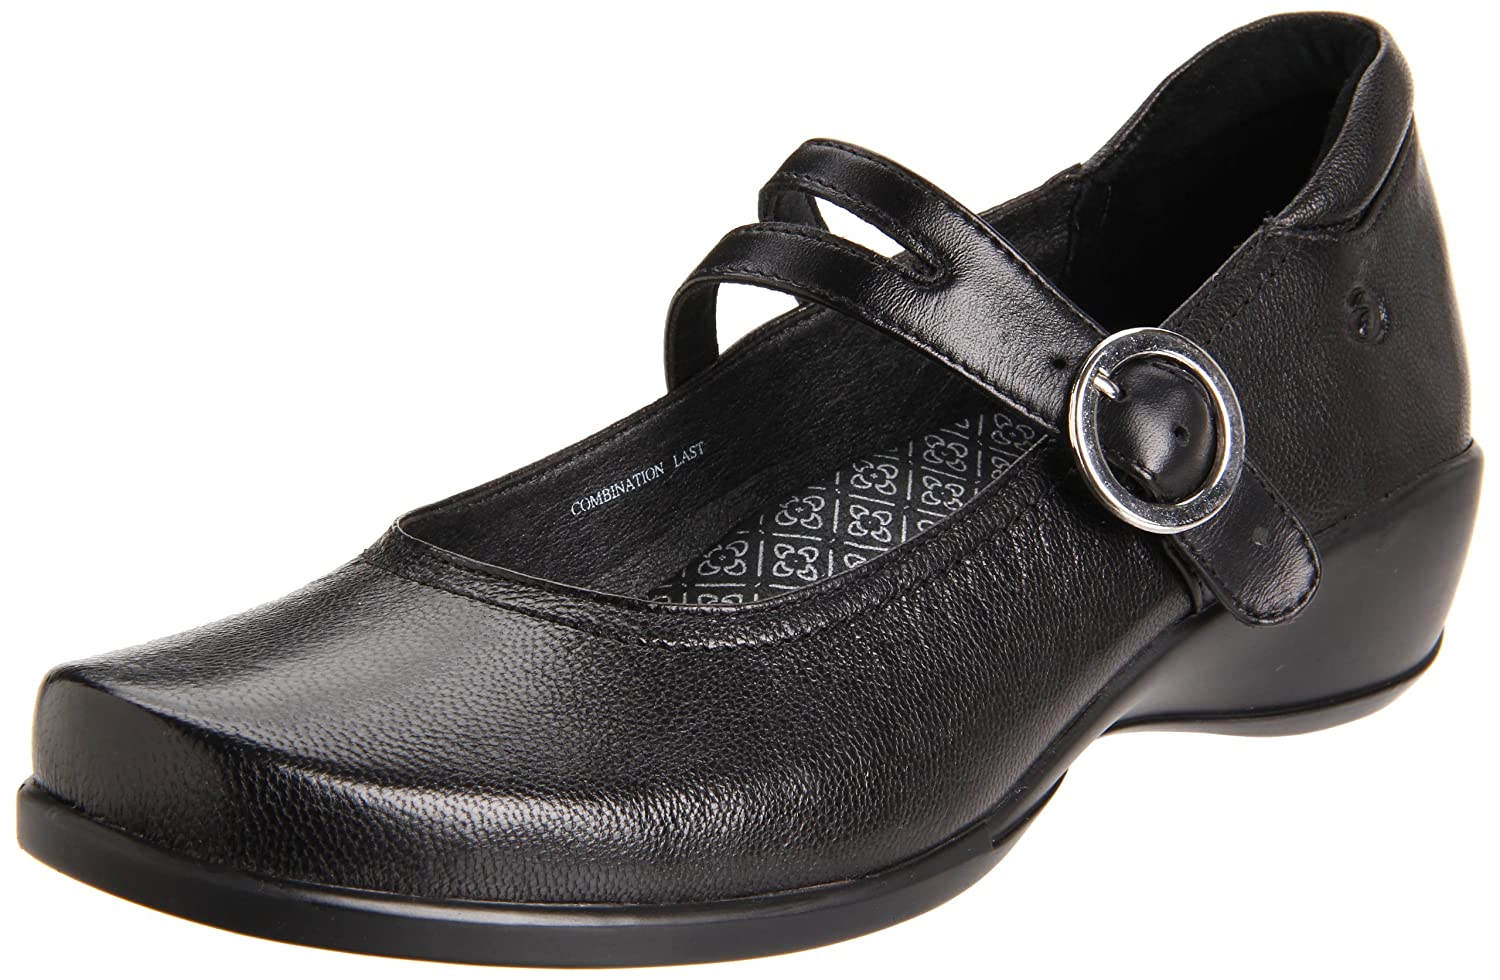 Aravon Women's Tonya Mary Jane B004GTR4VY 6 2A US|Black